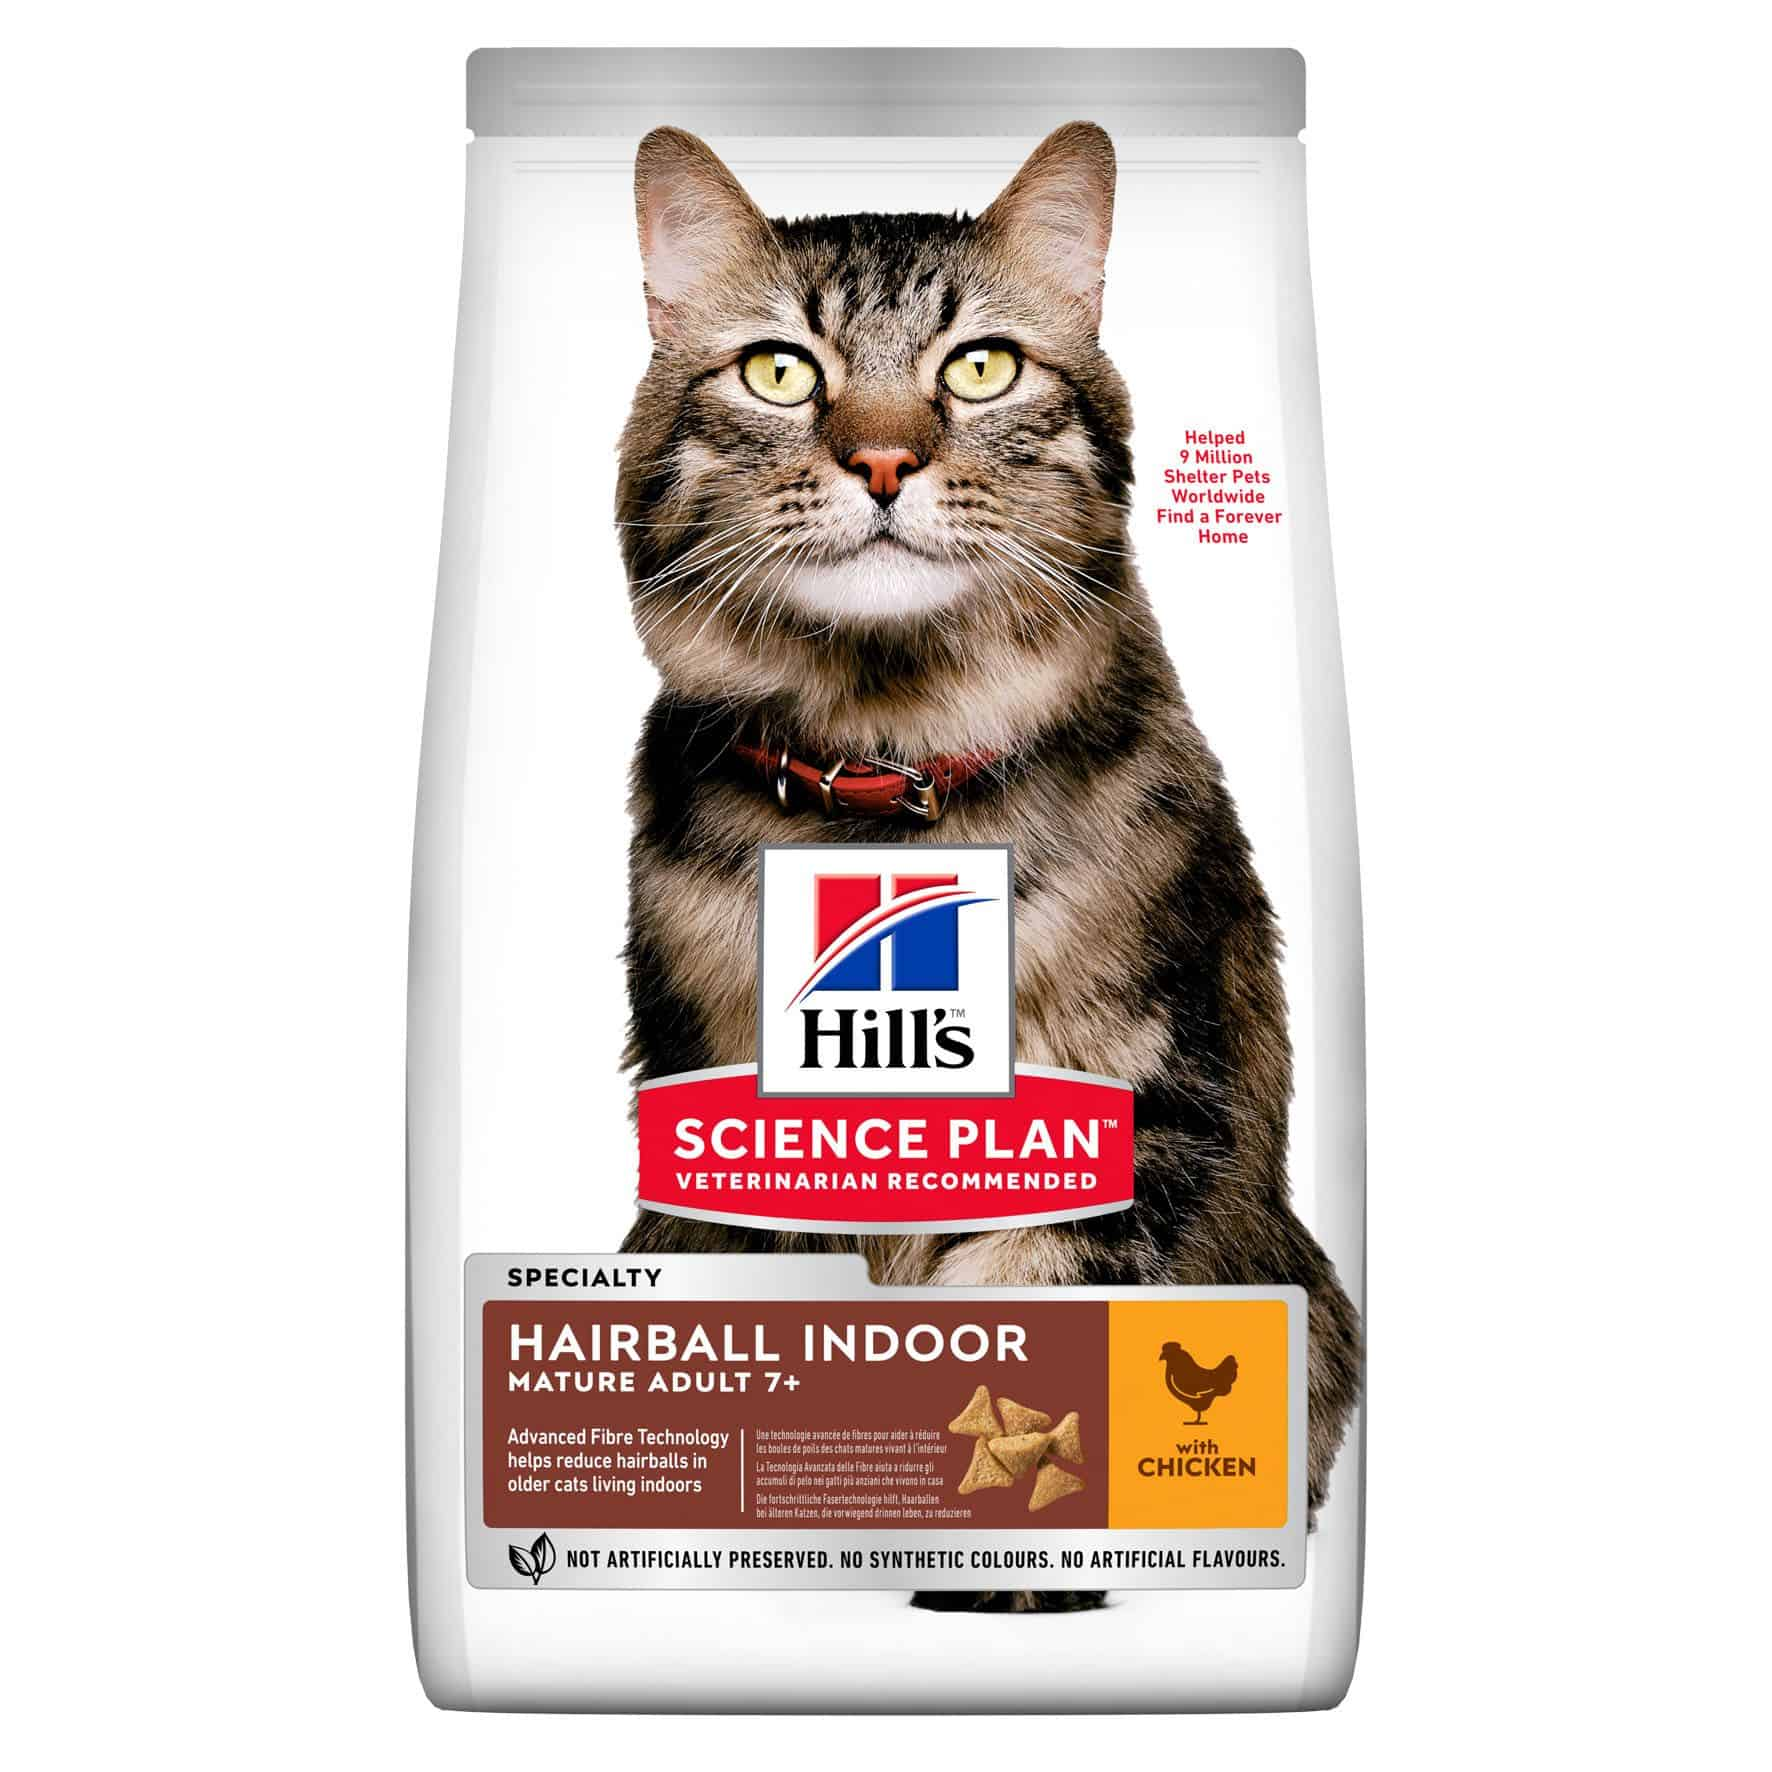 hill s hairball indoor mature 7